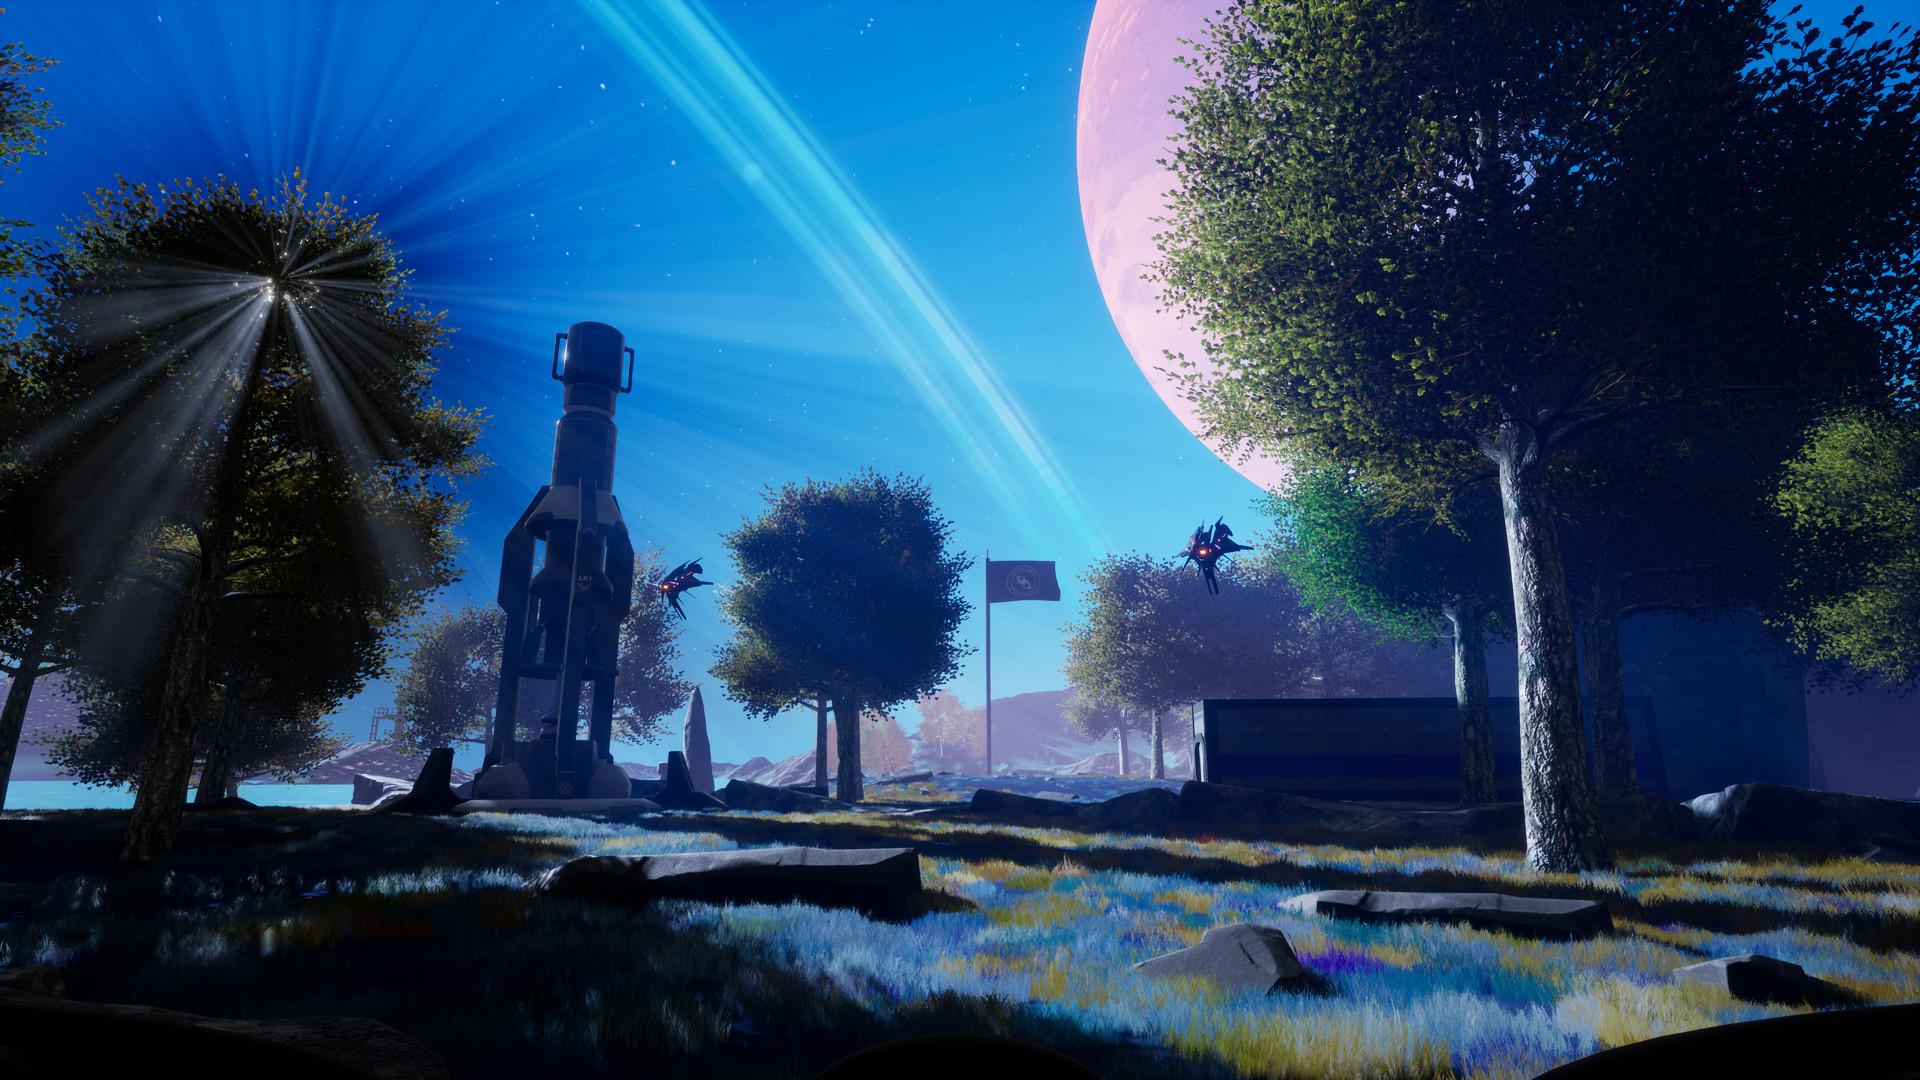 Within the Cosmos evokes No Man's Sky levels of ambition